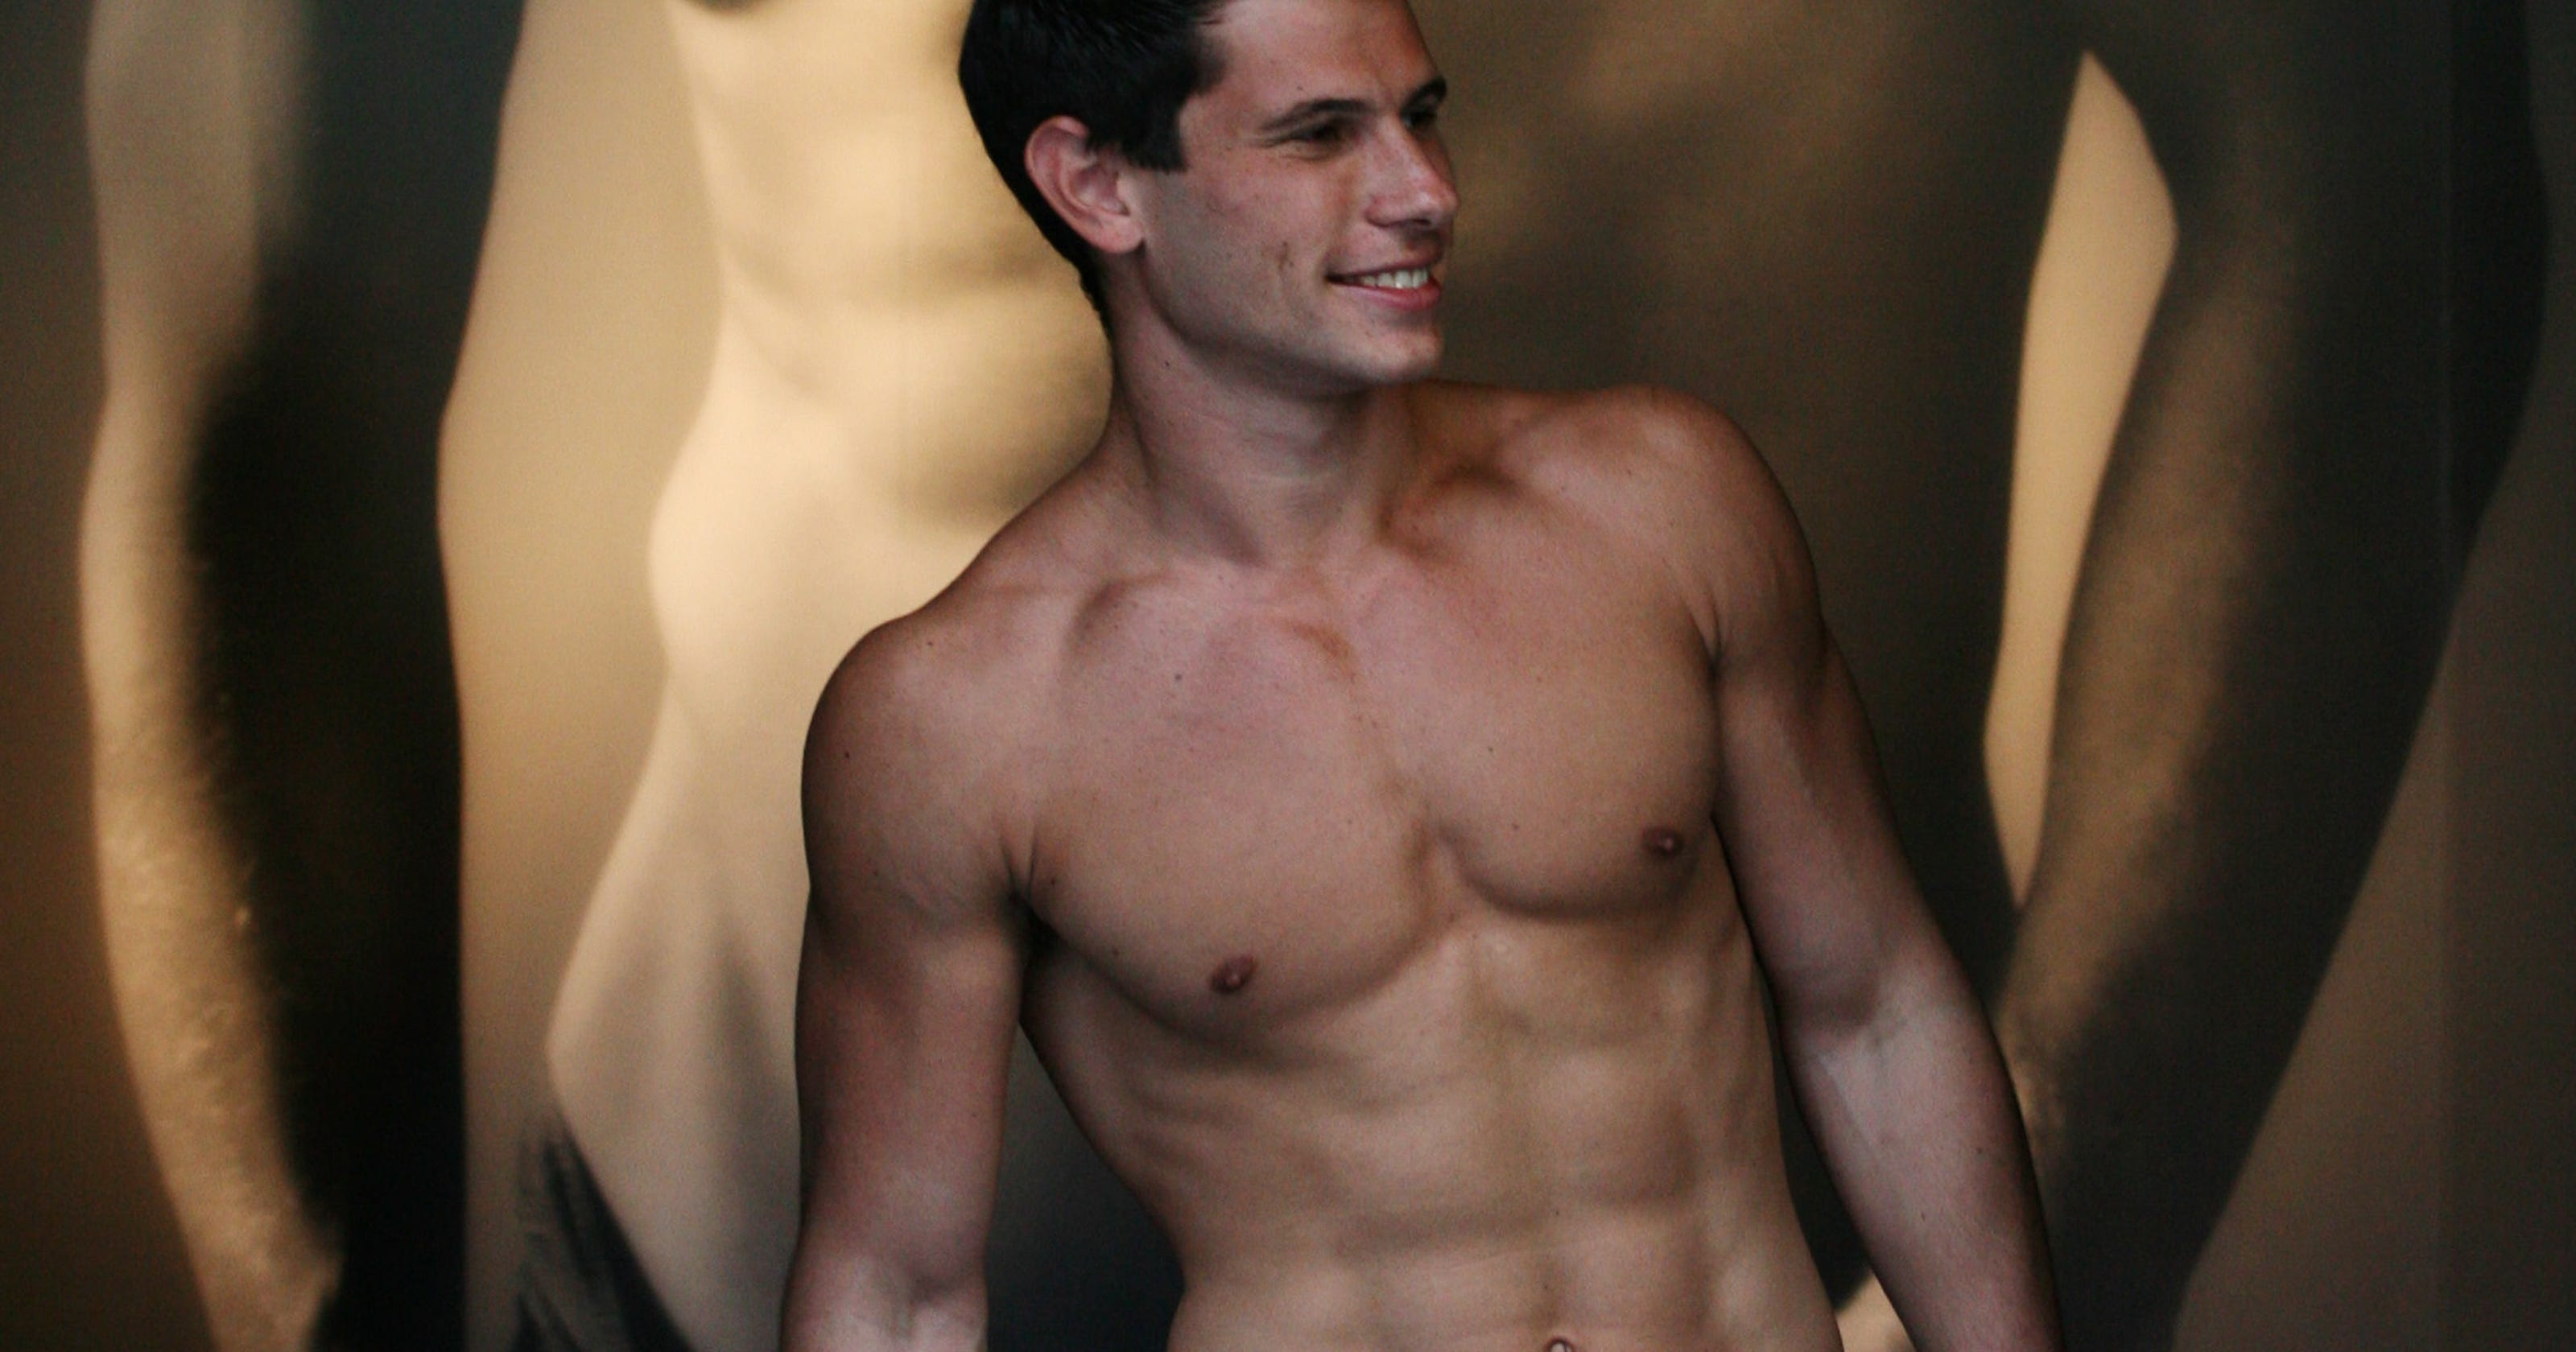 Abercrombie & Fitch opts to tone down the sexy